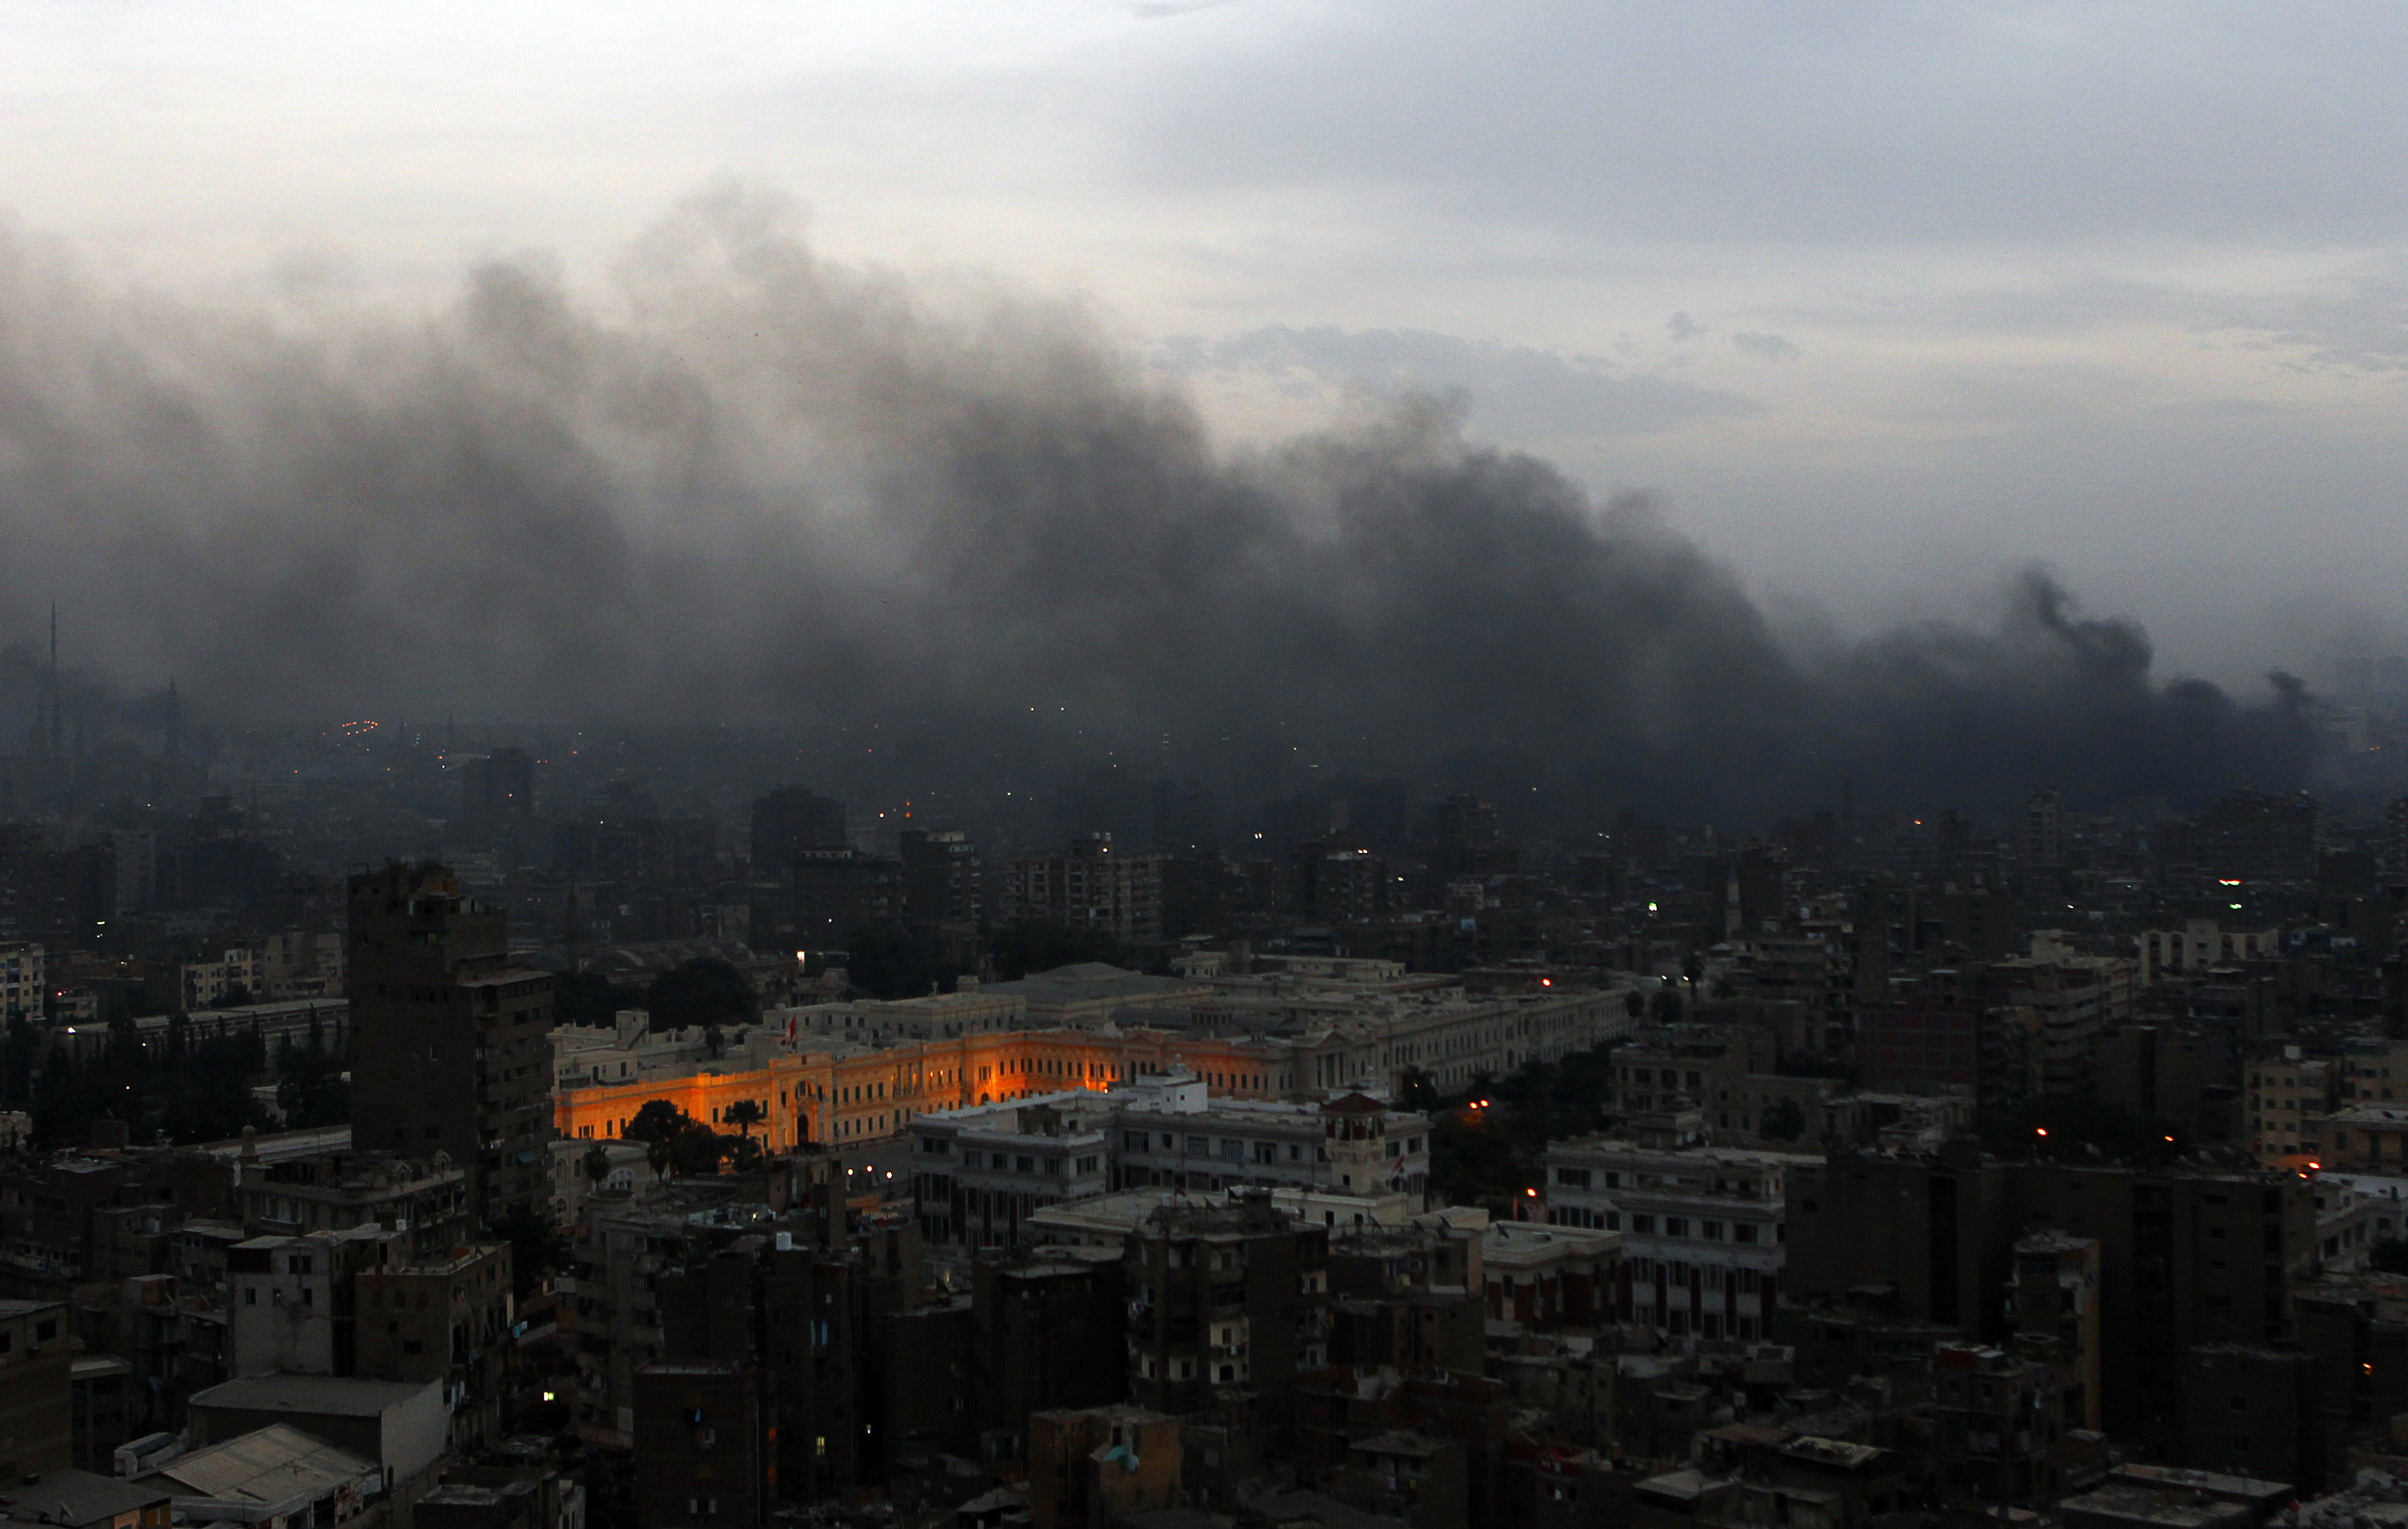 Smoke billows over Cairo following clashes between protesters and police January 28, 2011 (Reuters)